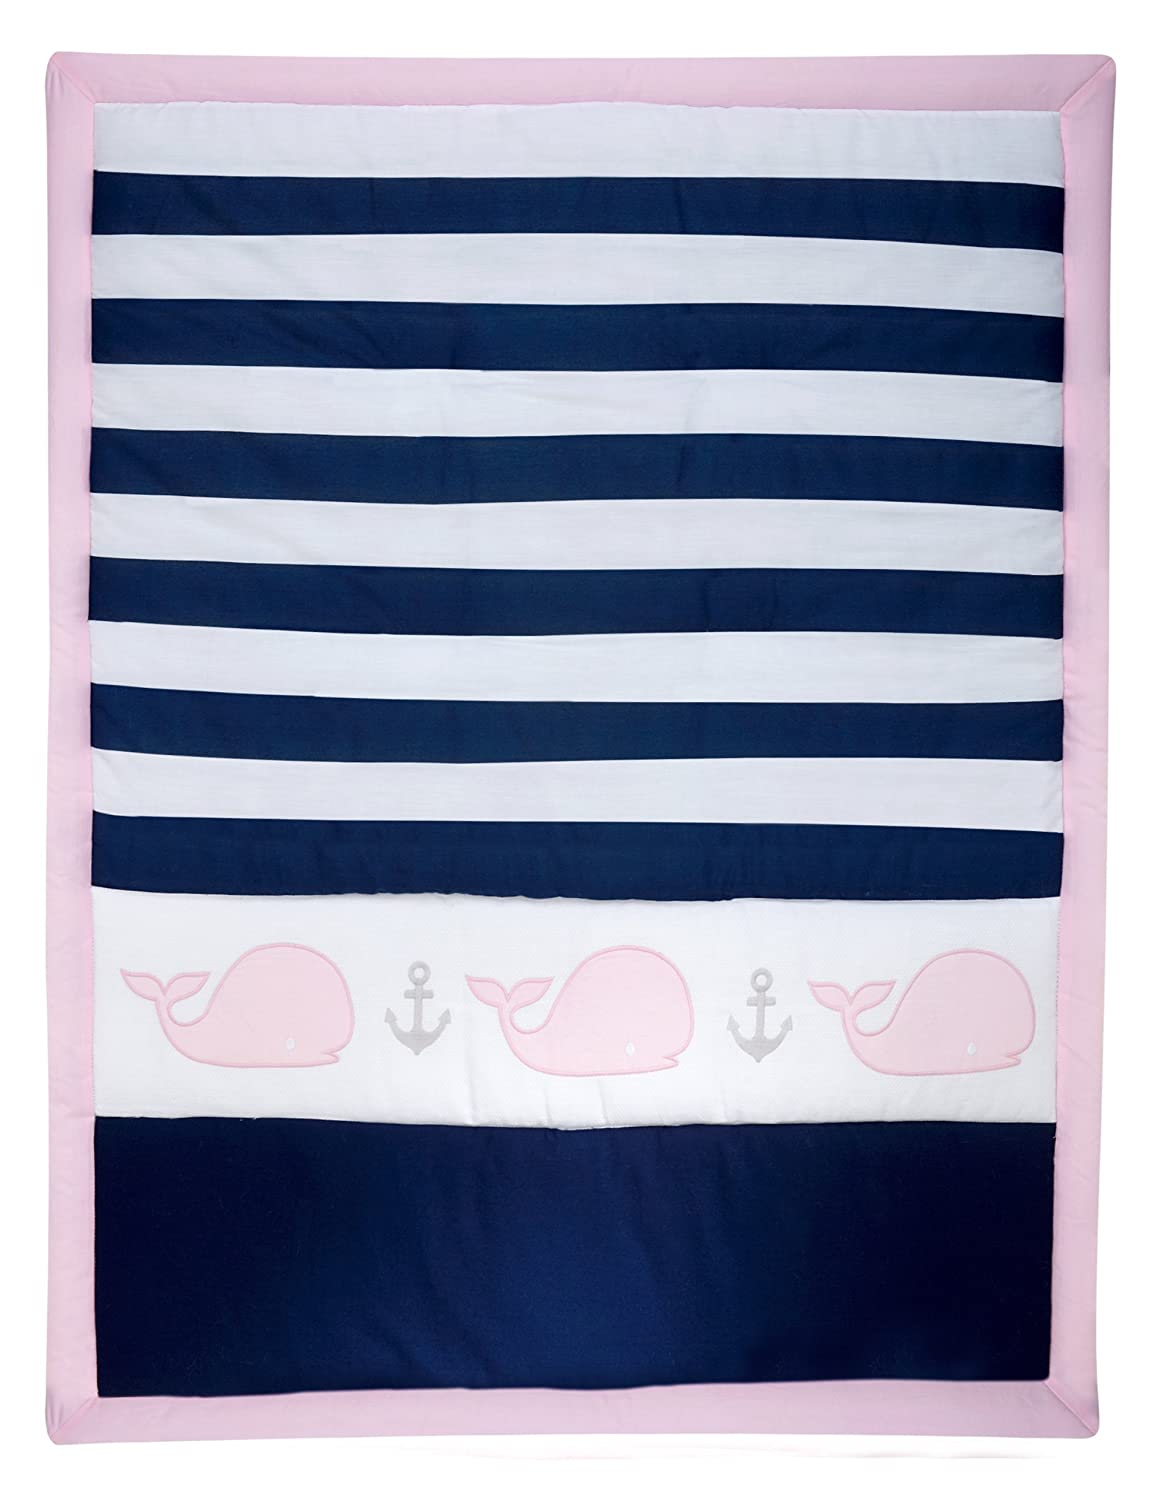 Nautica Kids Nursery Separates Comforter, Pink, Navy, White Crown Crafts Inc 4095001